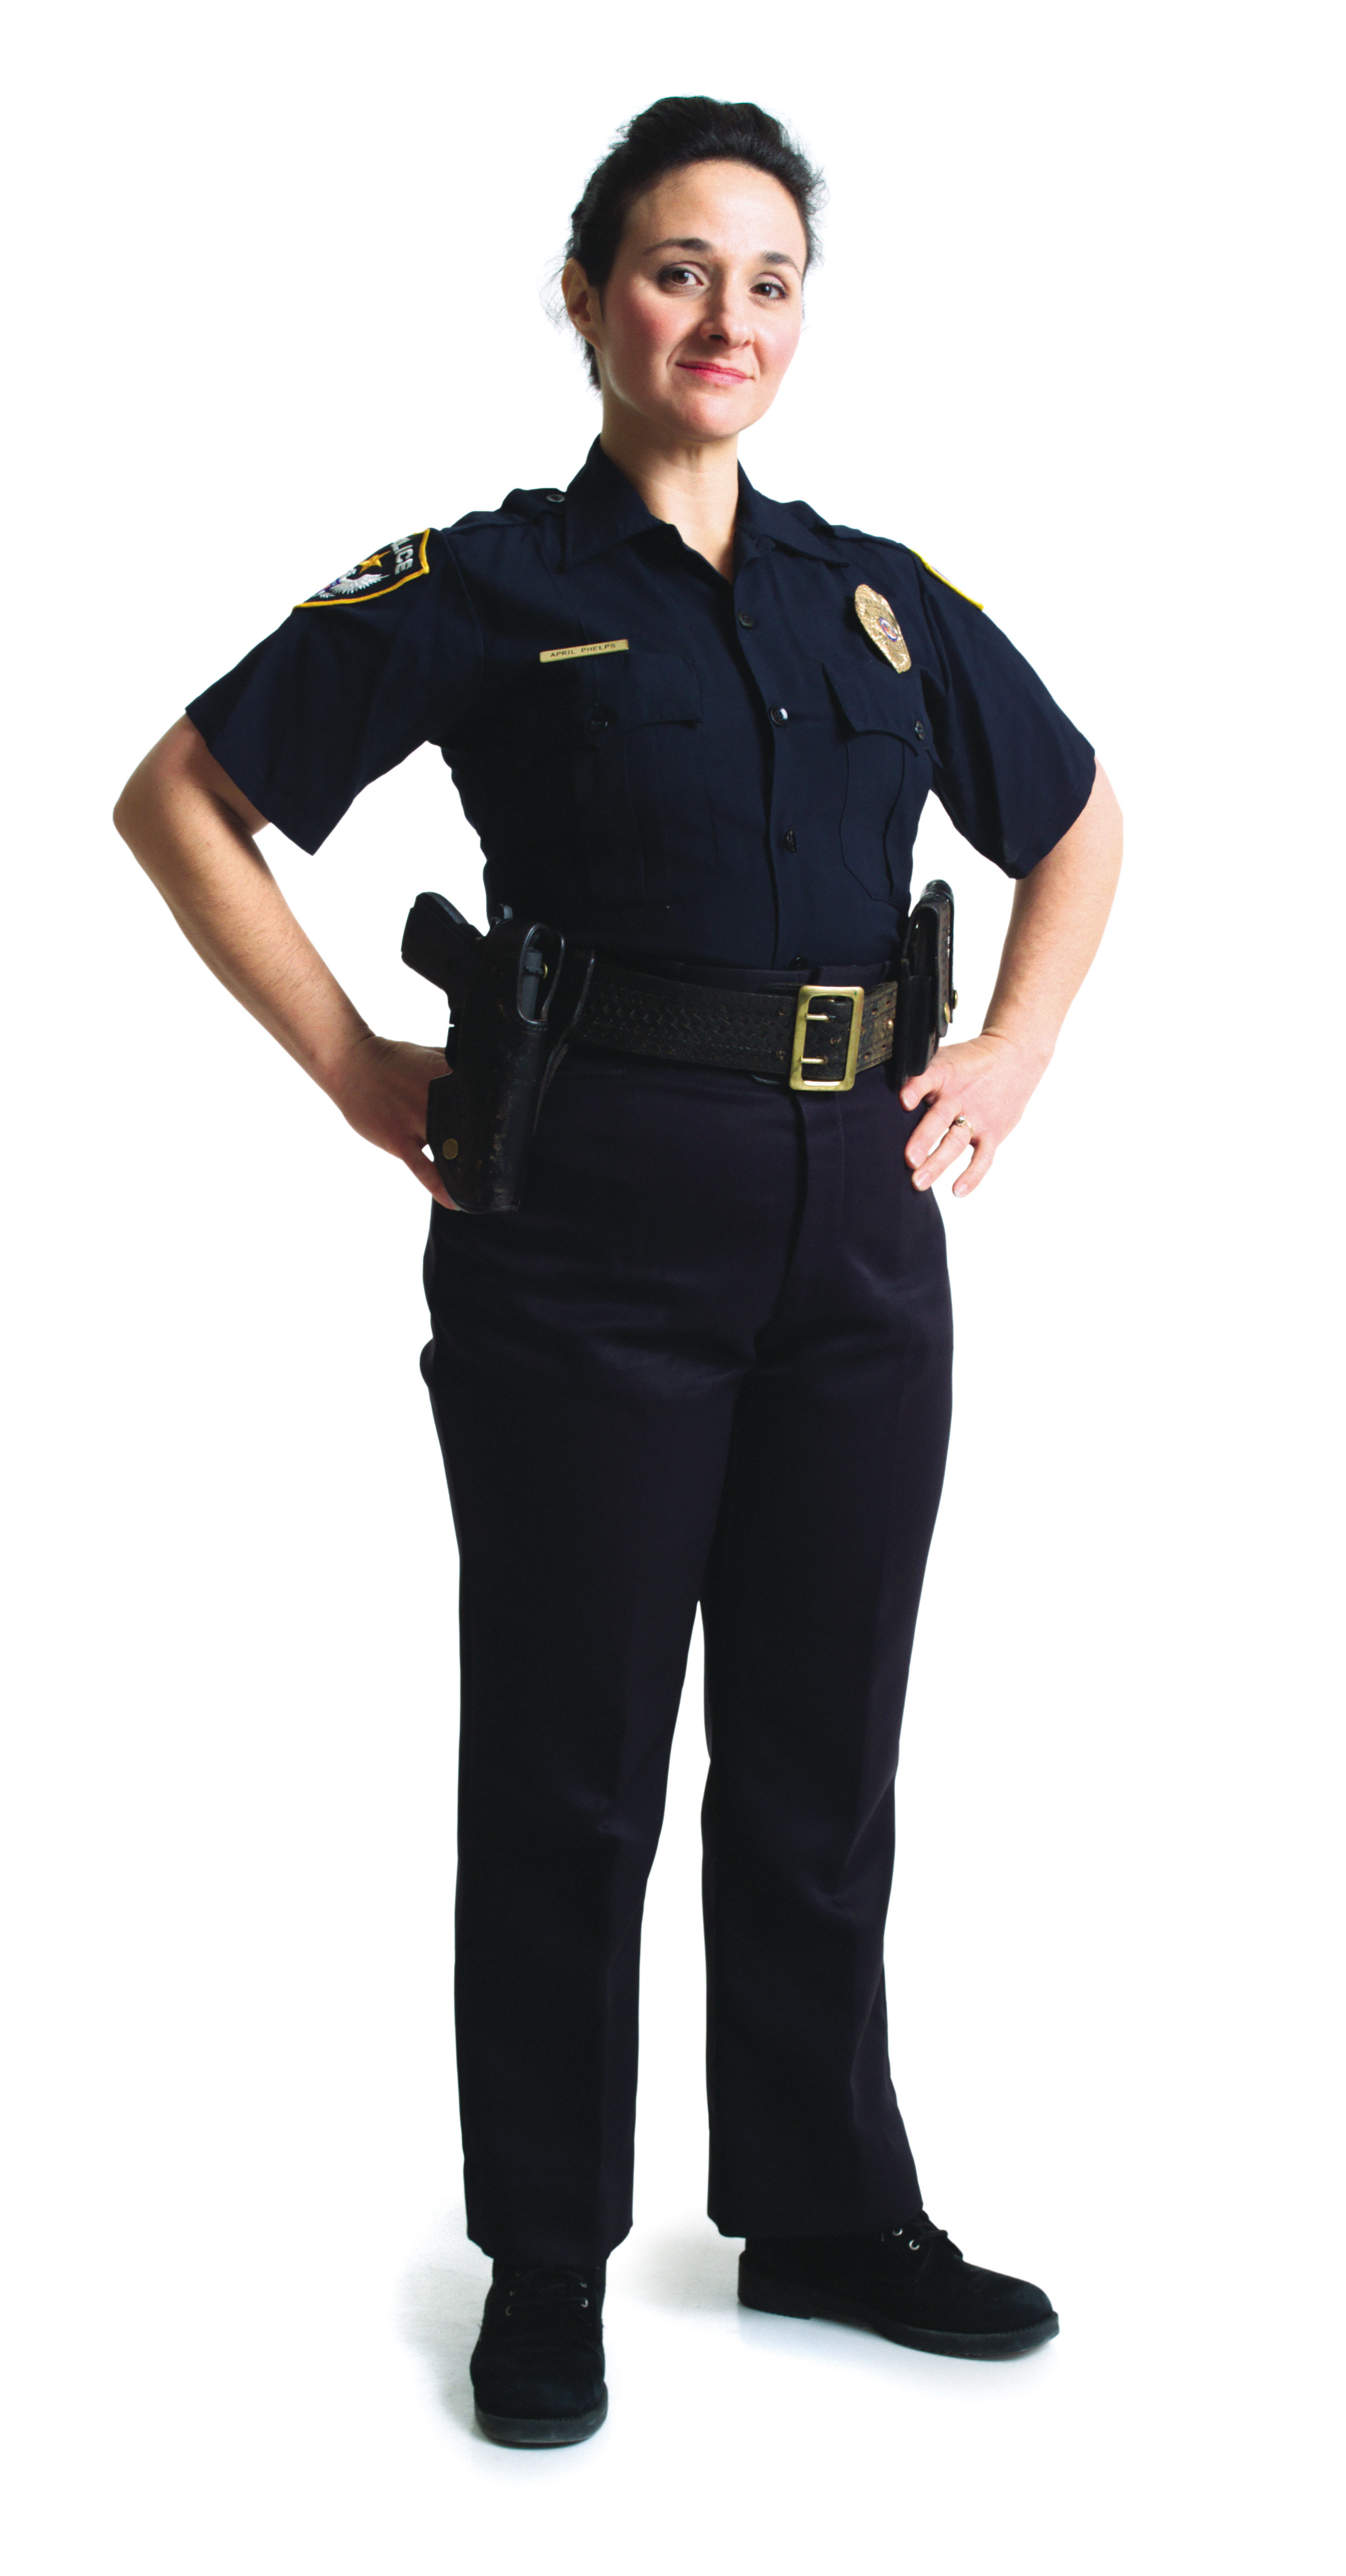 Physical Qualifications to Be a Police Officer | Career Trend